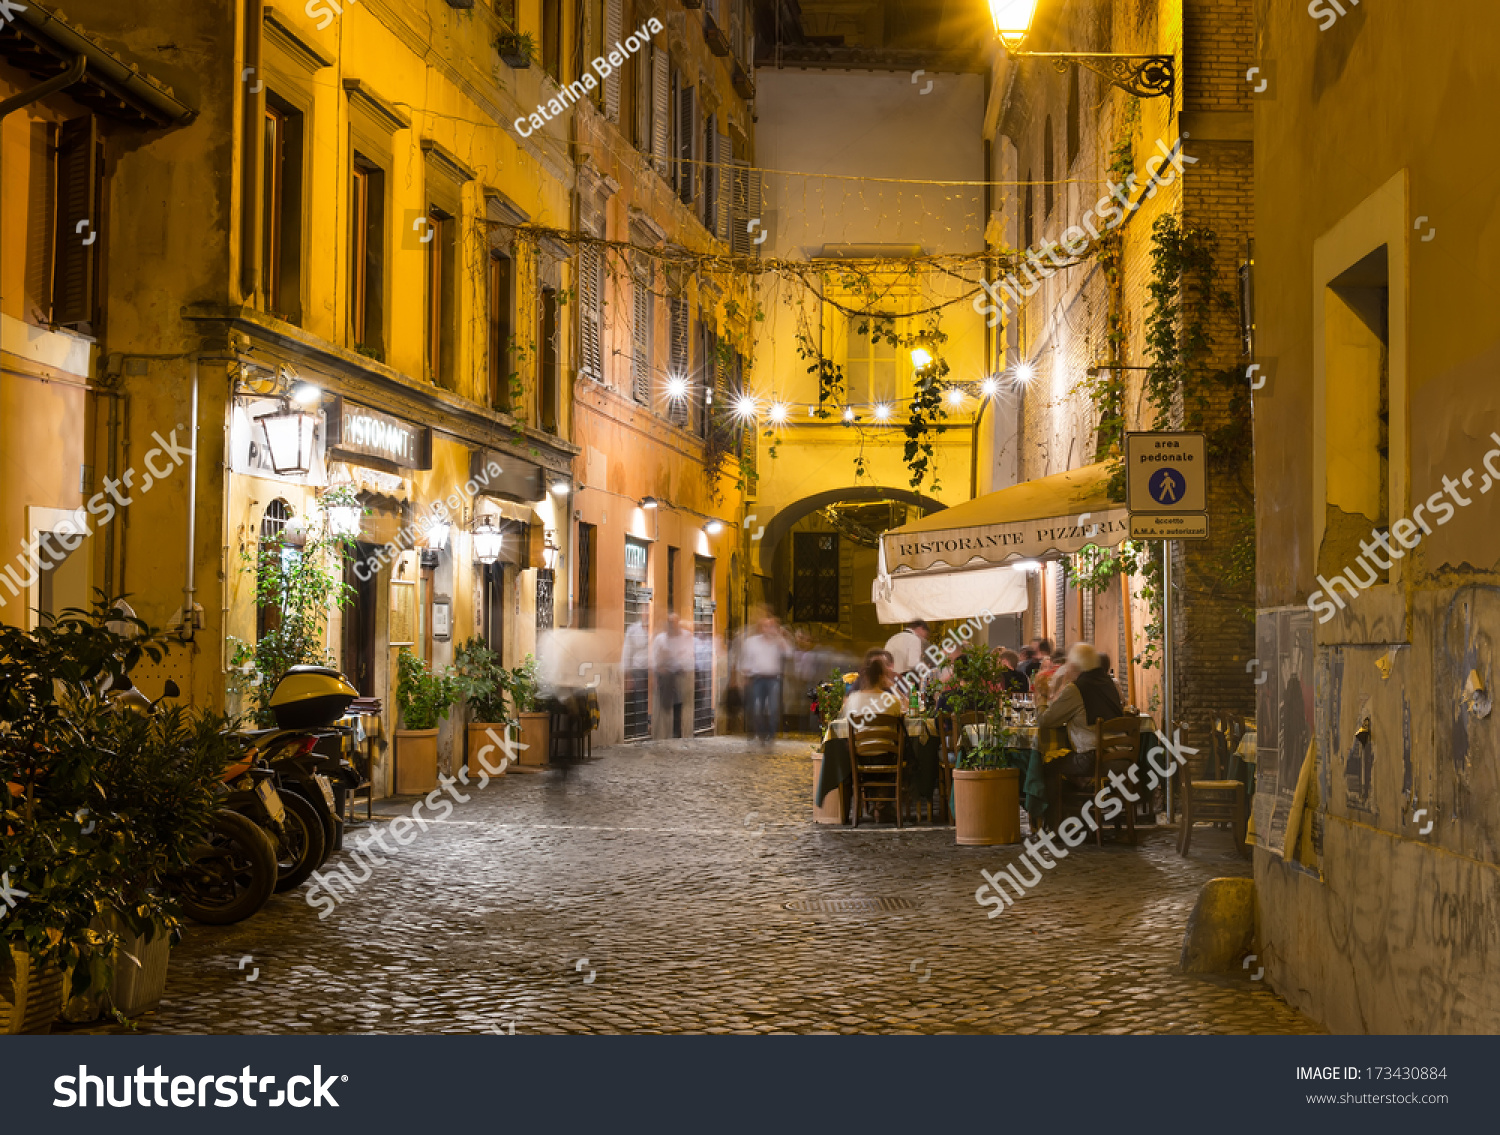 Old city streets and buildings in Rome, Italy | Robert Randall ...